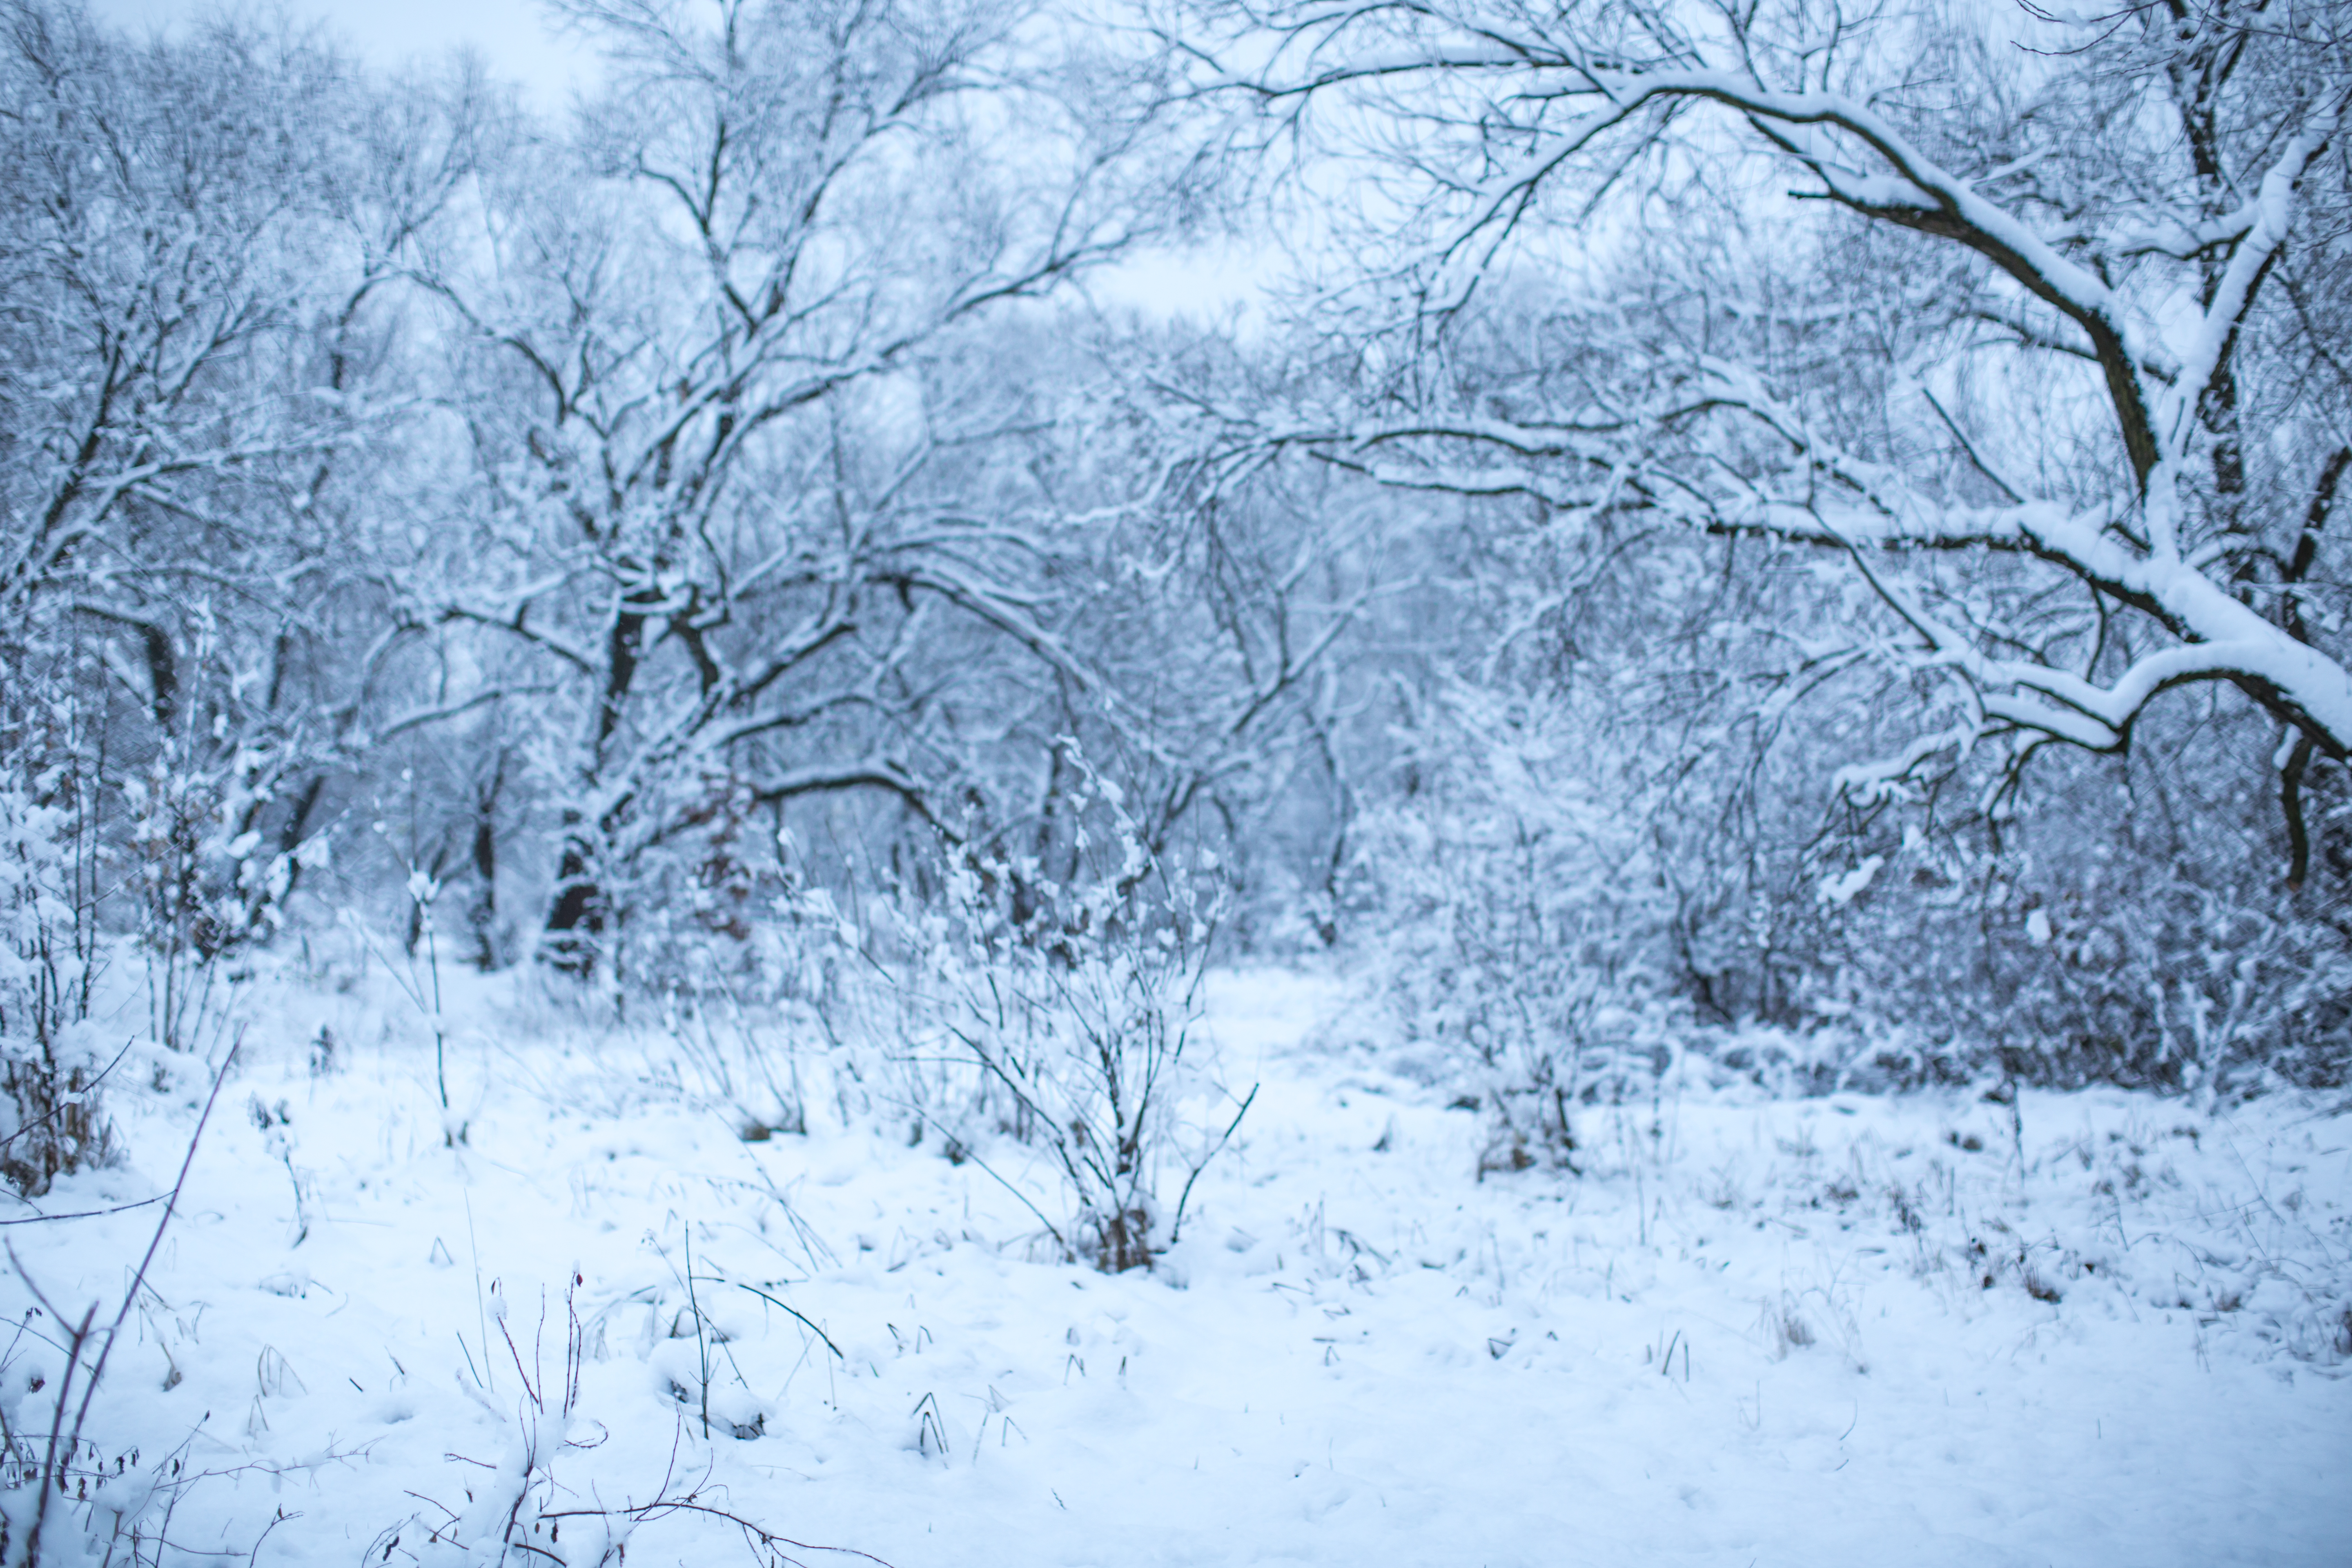 Blurred snow forest example image 1